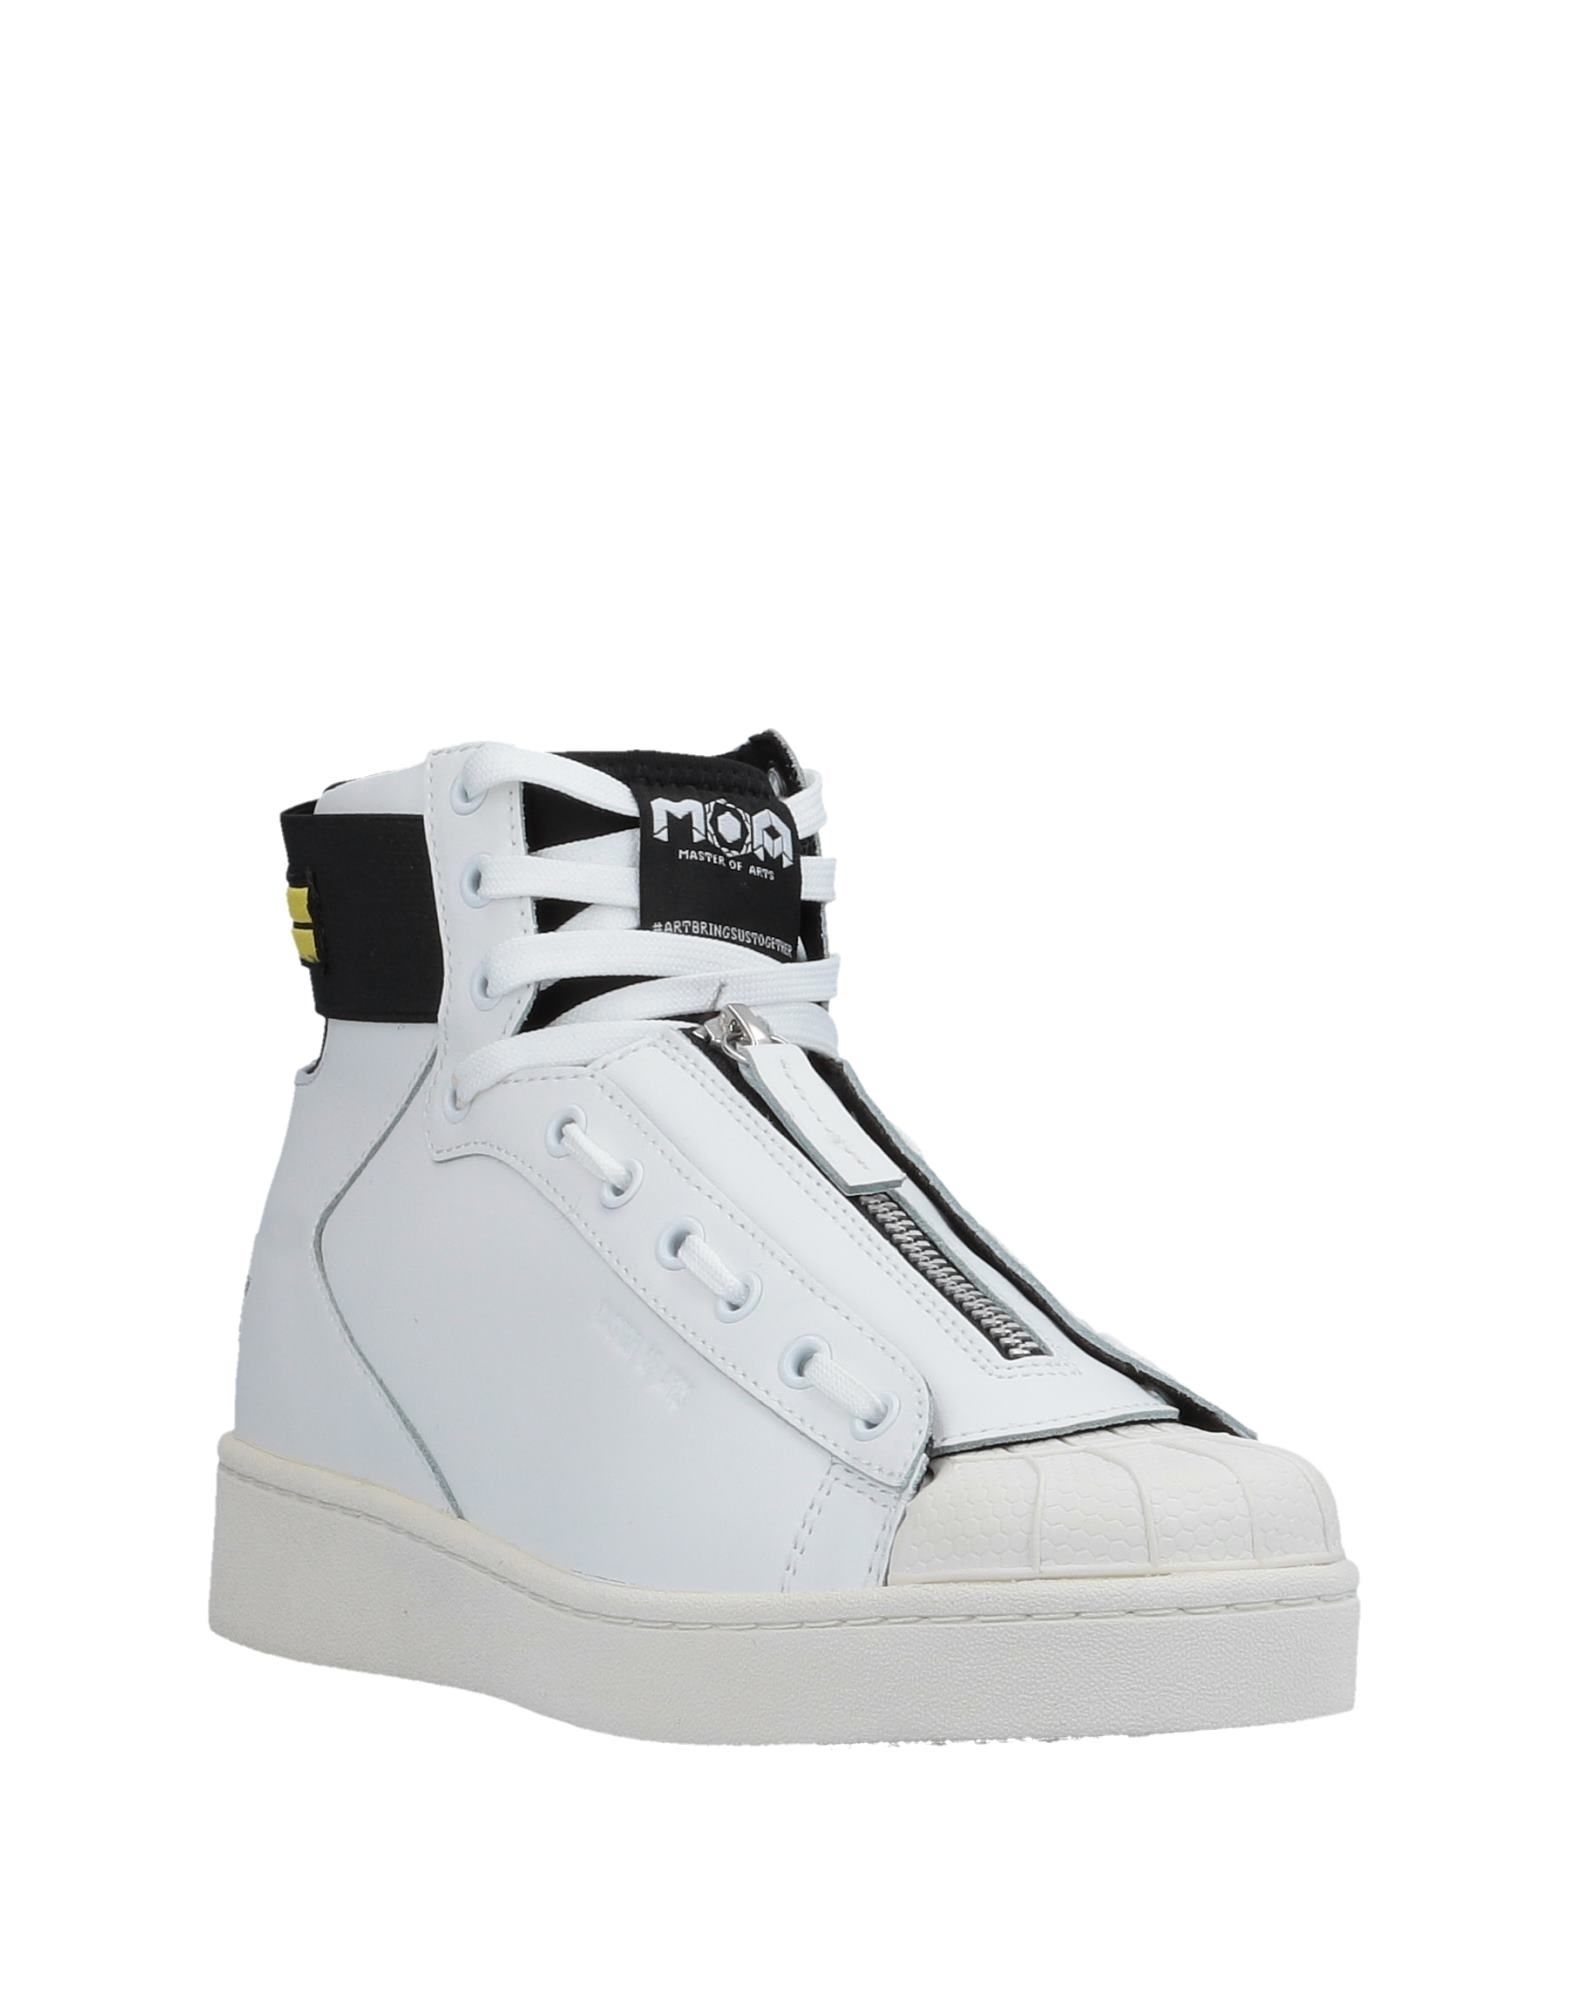 Moa Master Of Arts Sneakers Sneakers Sneakers - Men Moa Master Of Arts Sneakers online on  Canada - 11509777XI 36847d